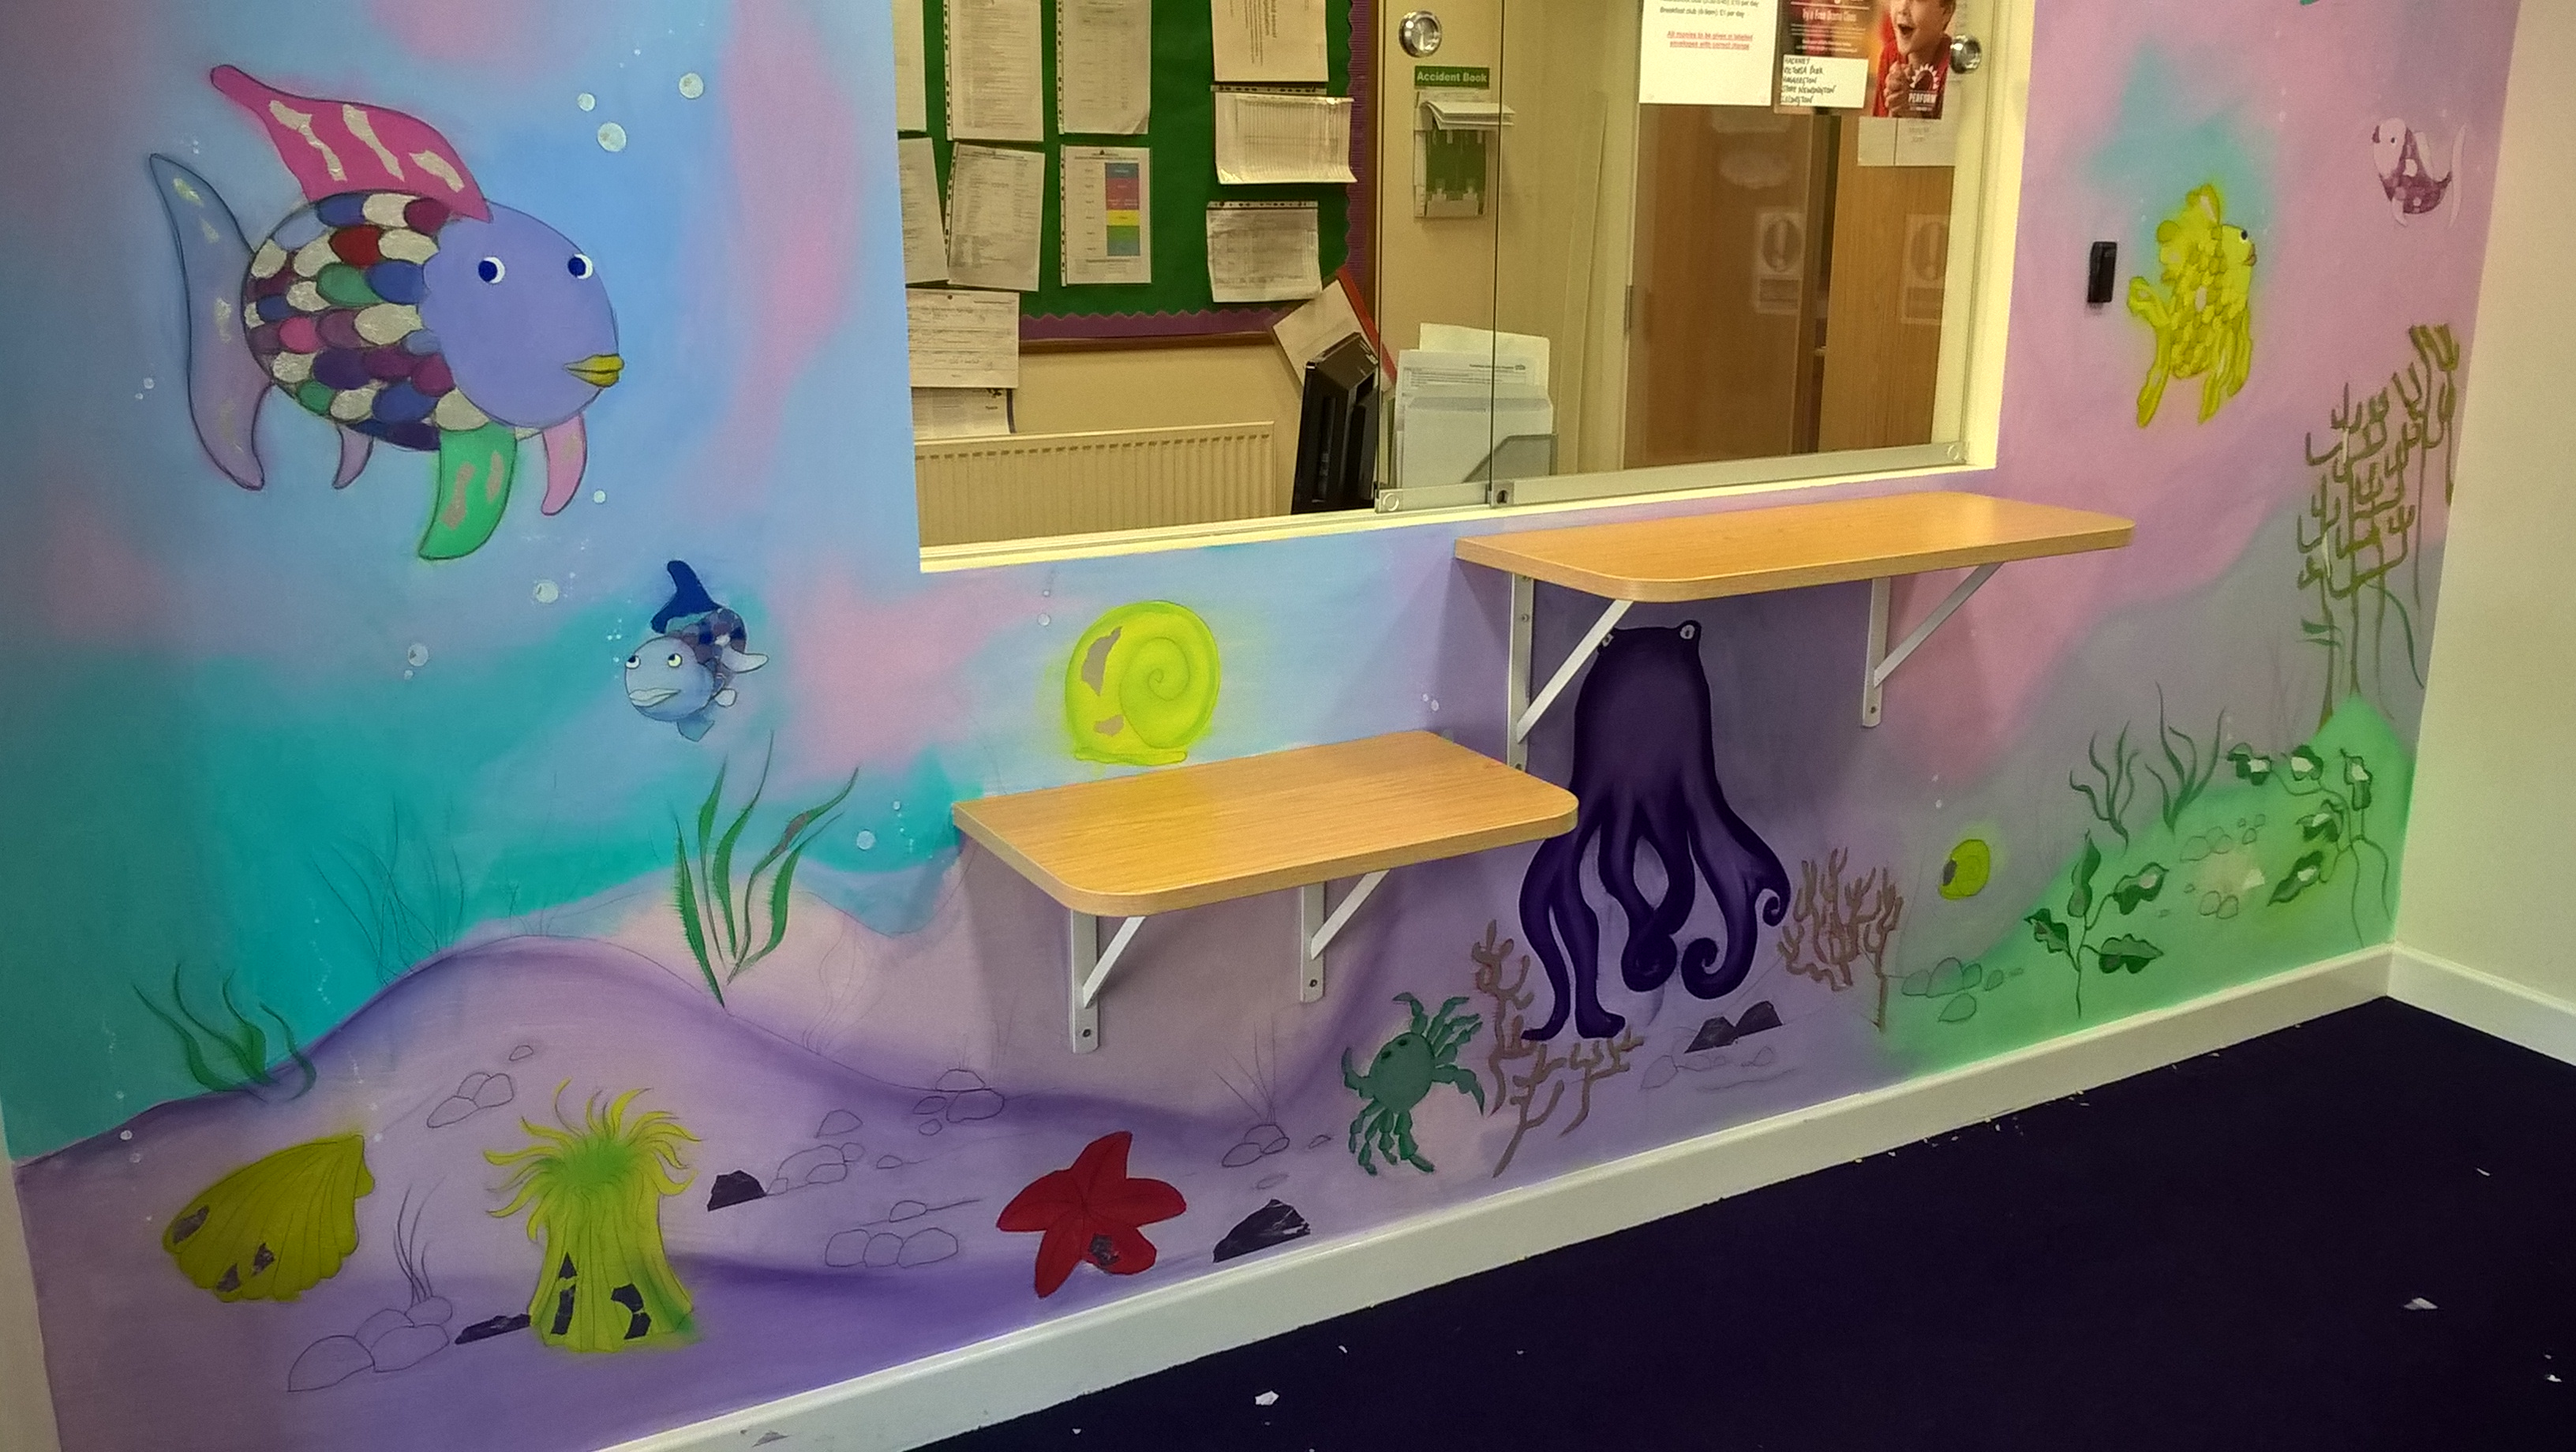 Office reception area. Rainbow fish